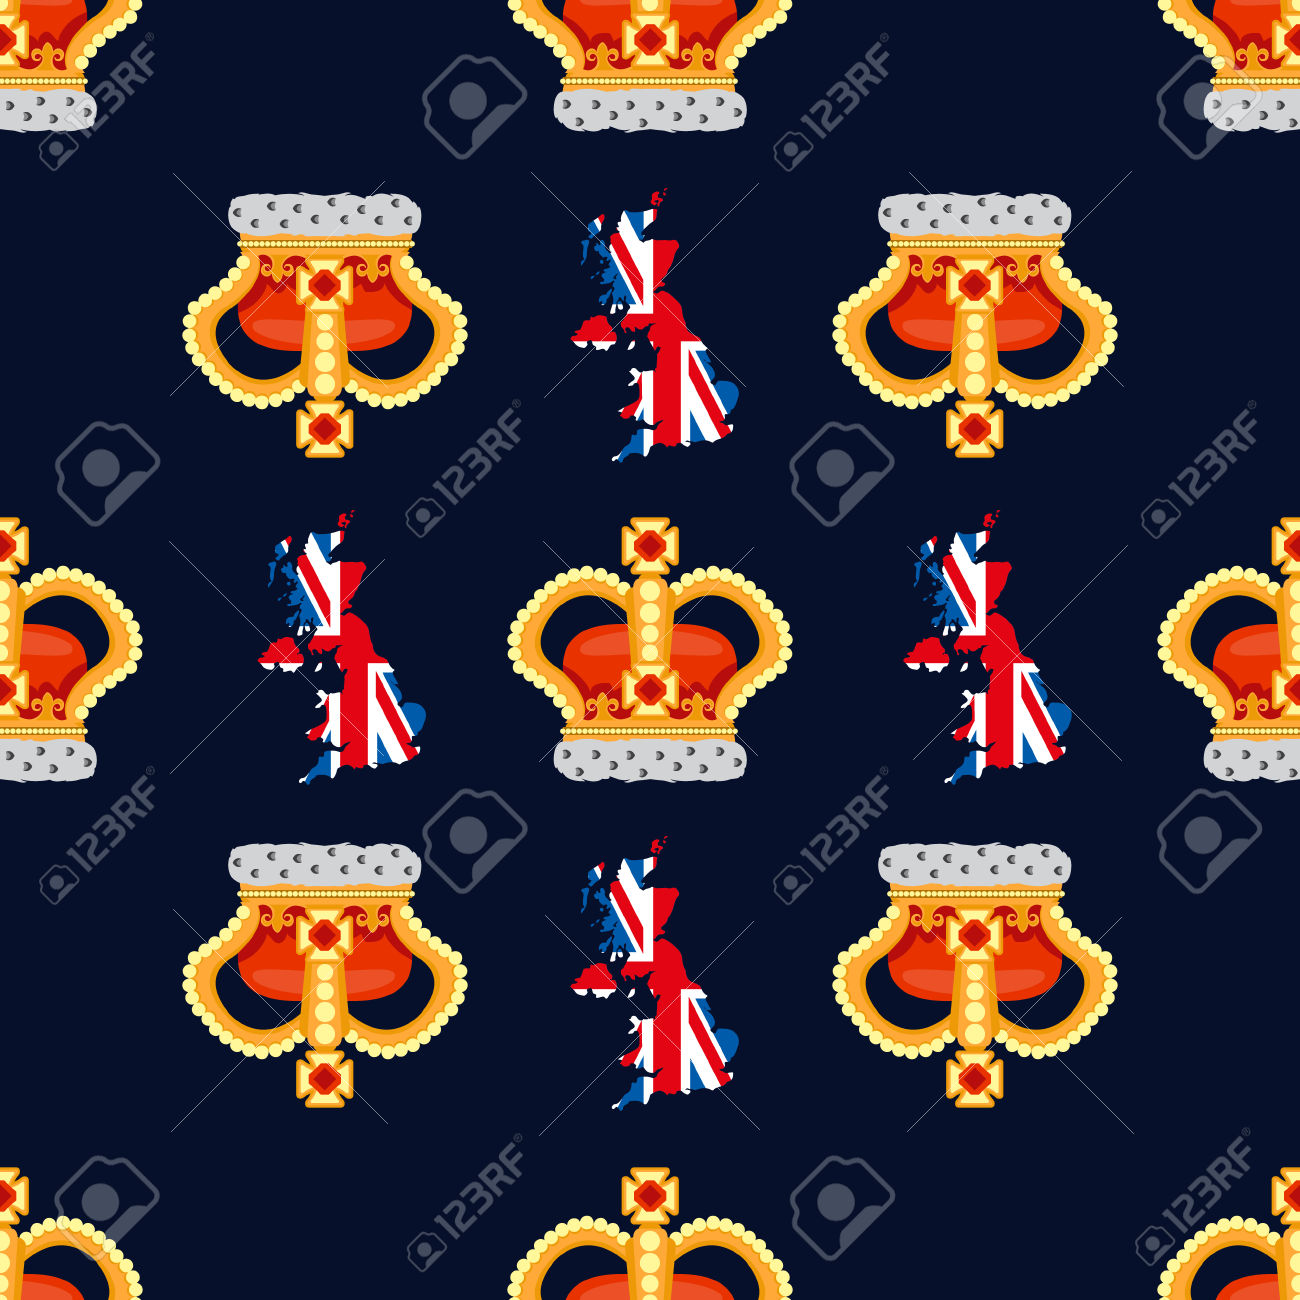 Seamless Pattern With Crown Monarch To The Noble Dark Blue.